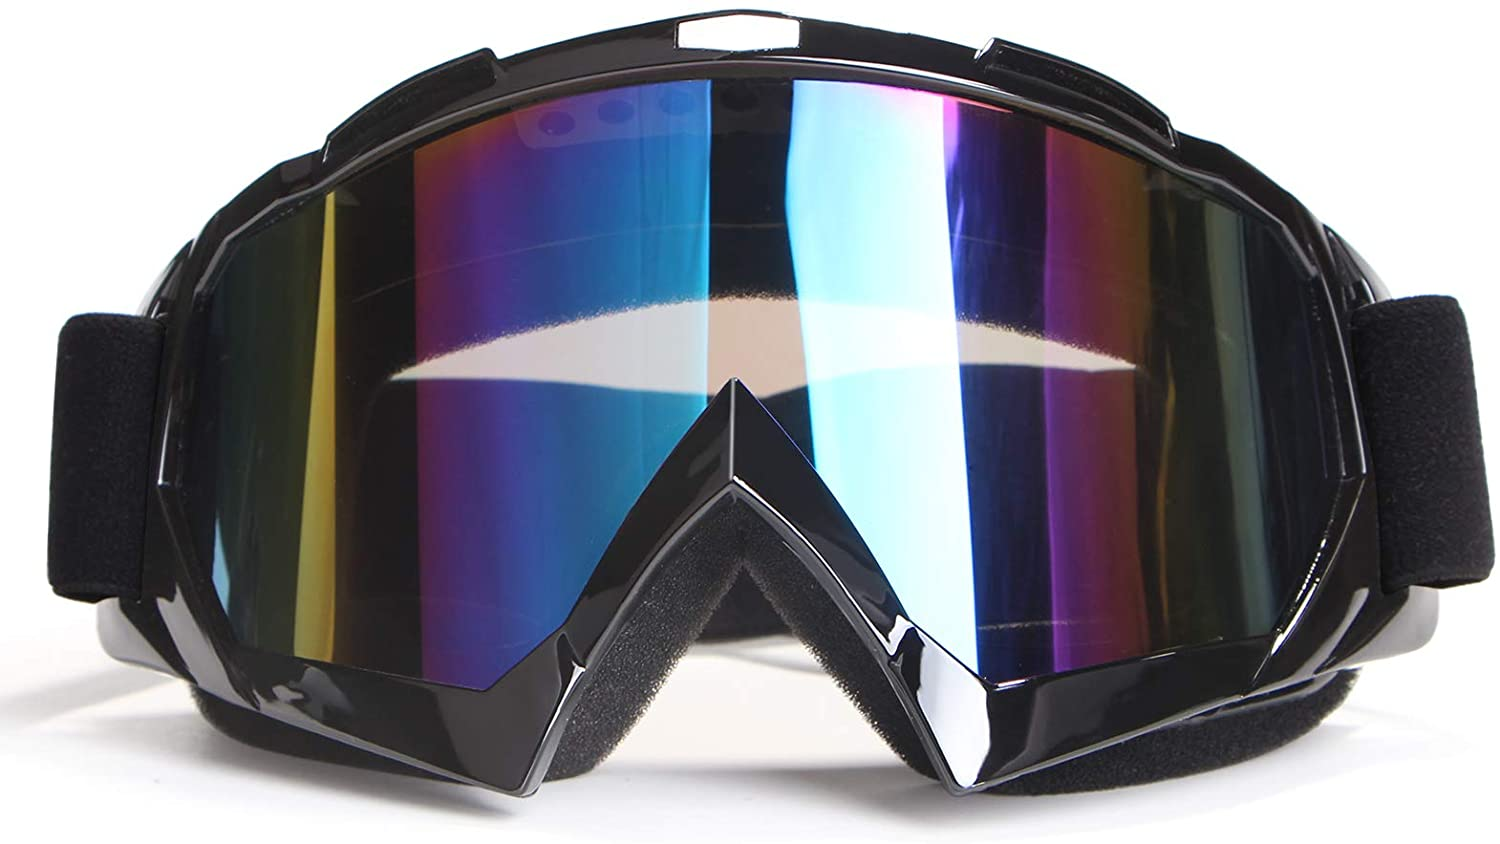 4-FQ Motorcycle Goggles Dirt Bike Goggles Motocross Goggles Windproof Skiing Goggles (Black Frame+Color Lens)